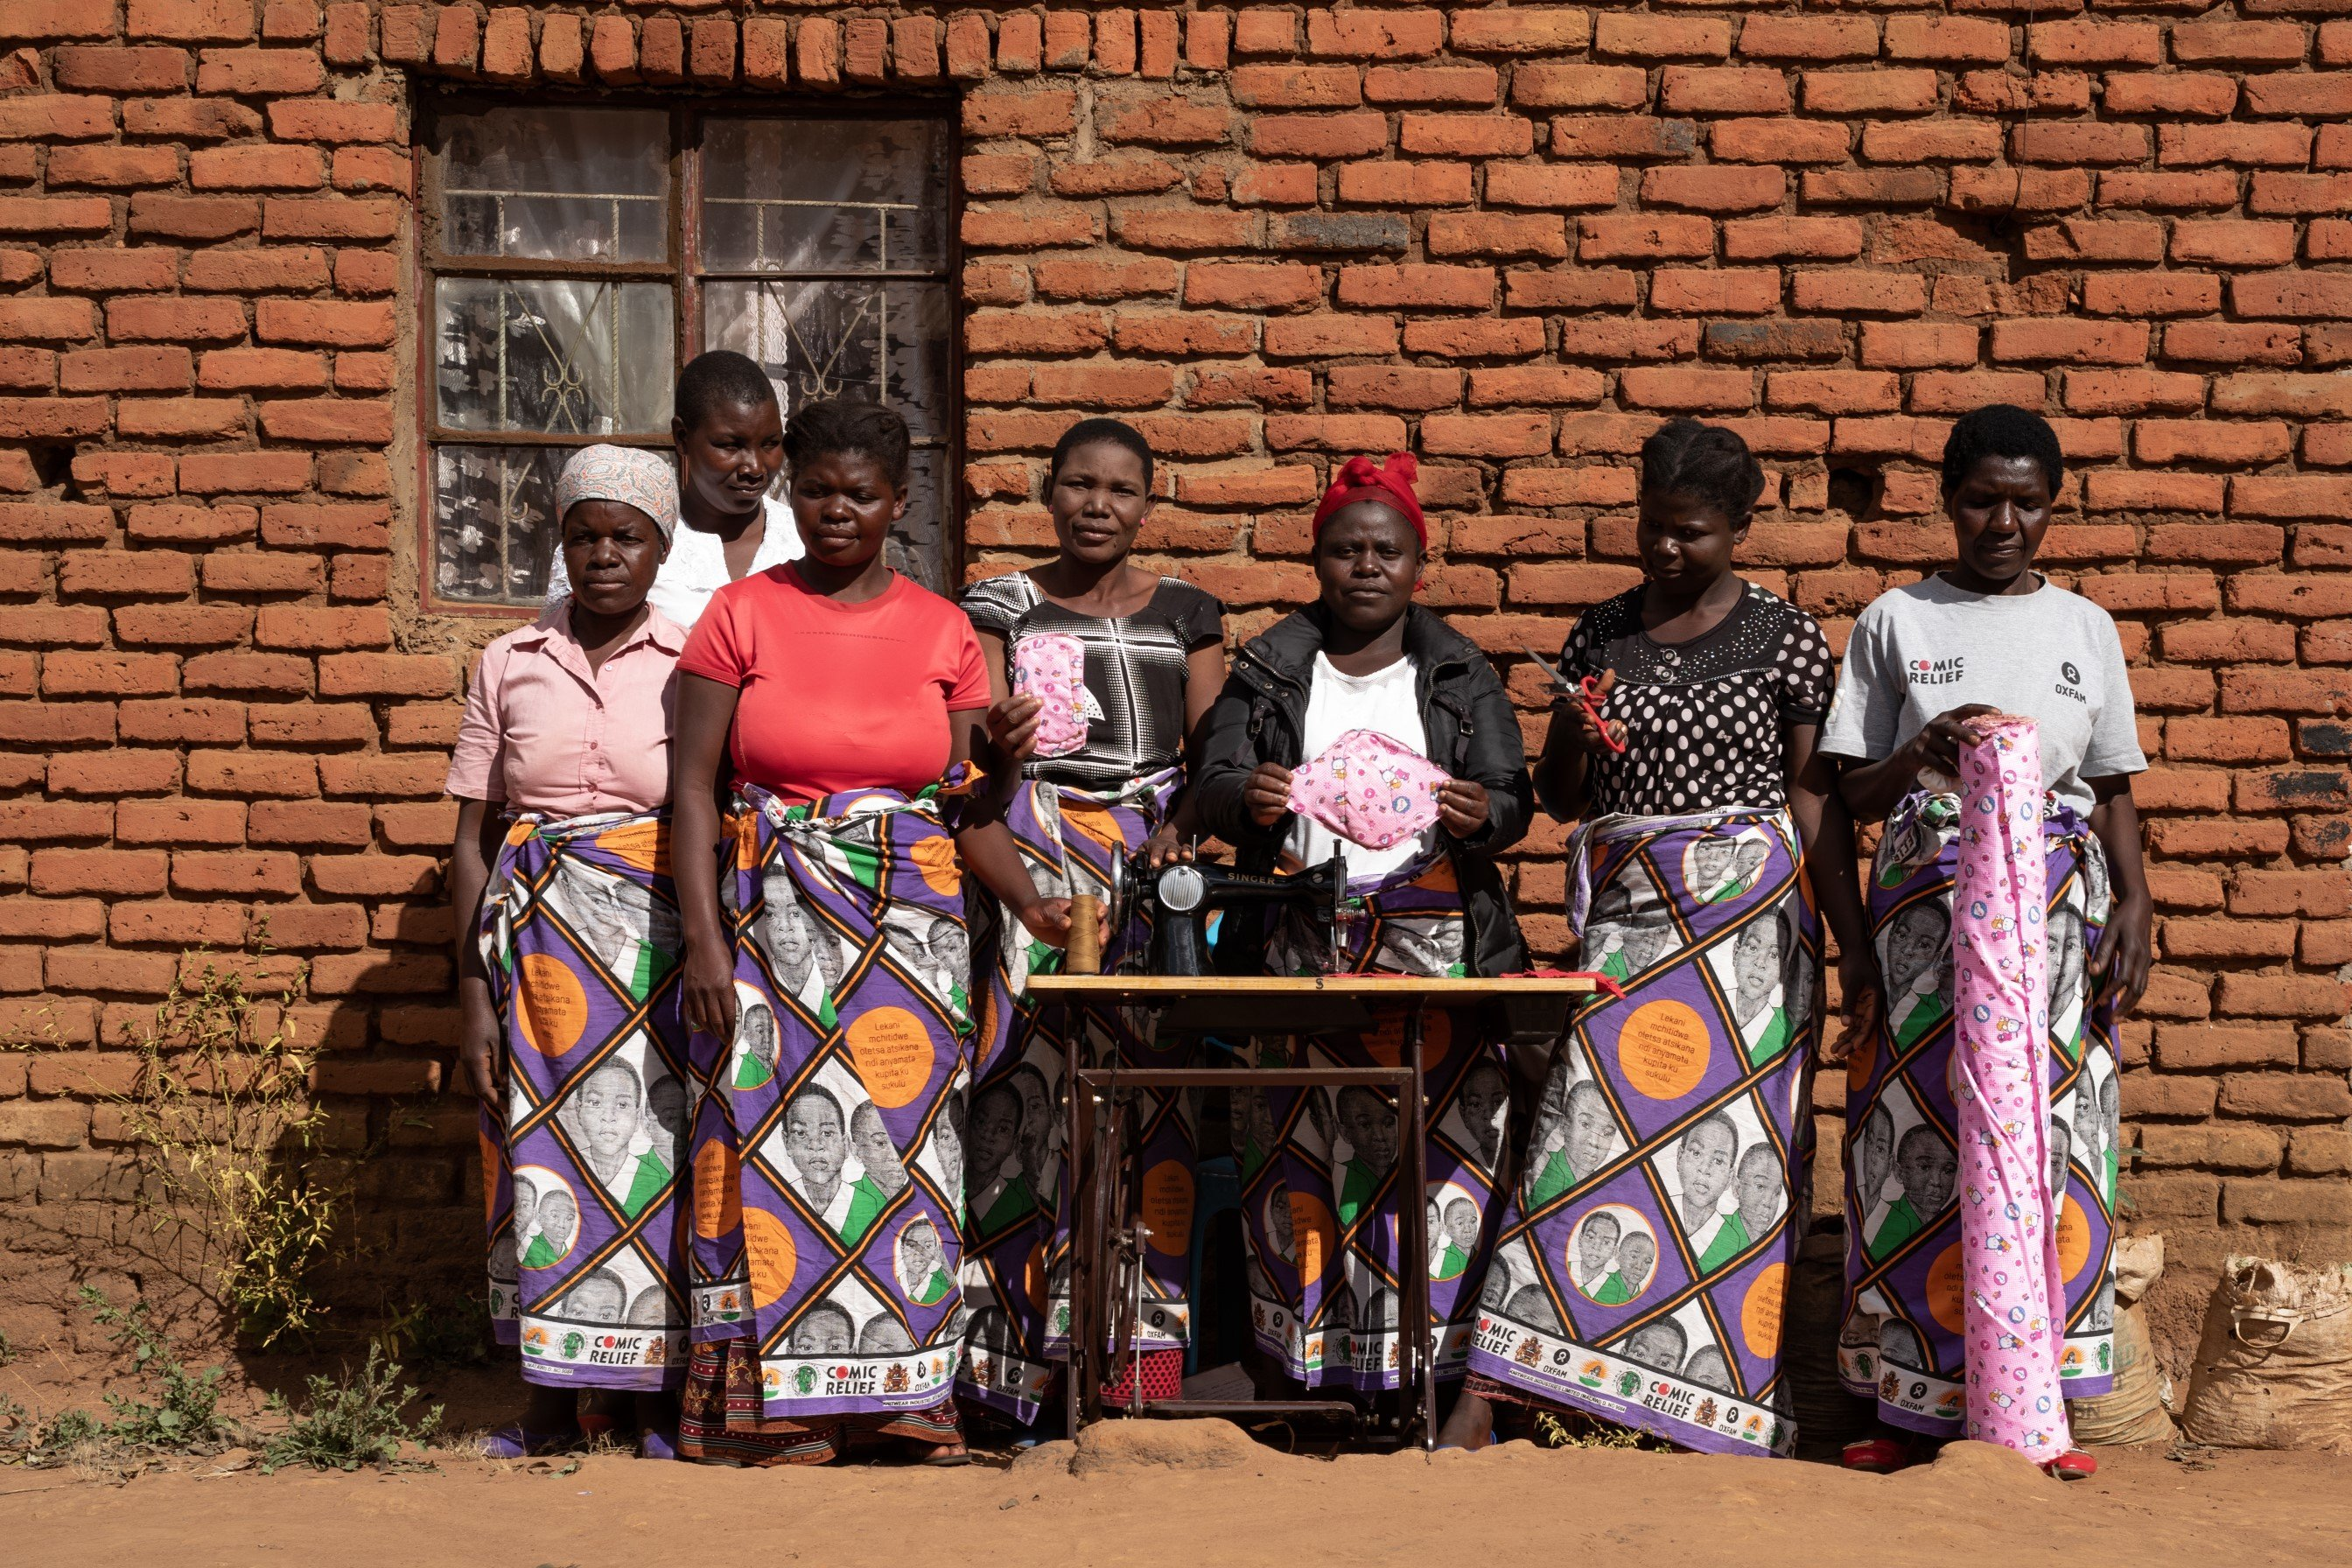 The mothers' group with a sewing machine and reusable sanitary napkin they made.